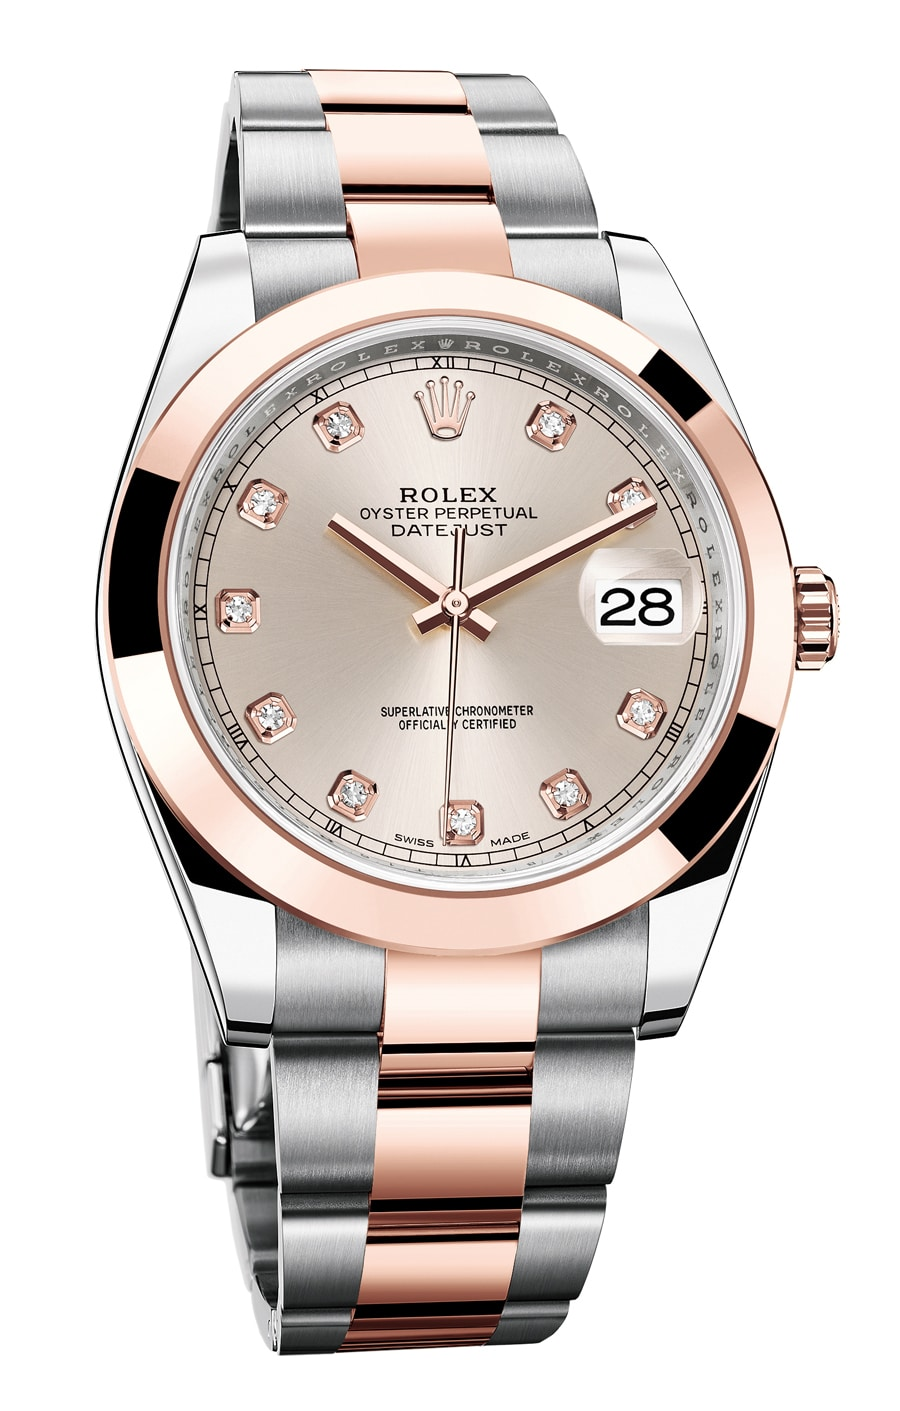 Rolex: Oyster Perpetual Datejust 41 in der Rosé-Diamant-Version